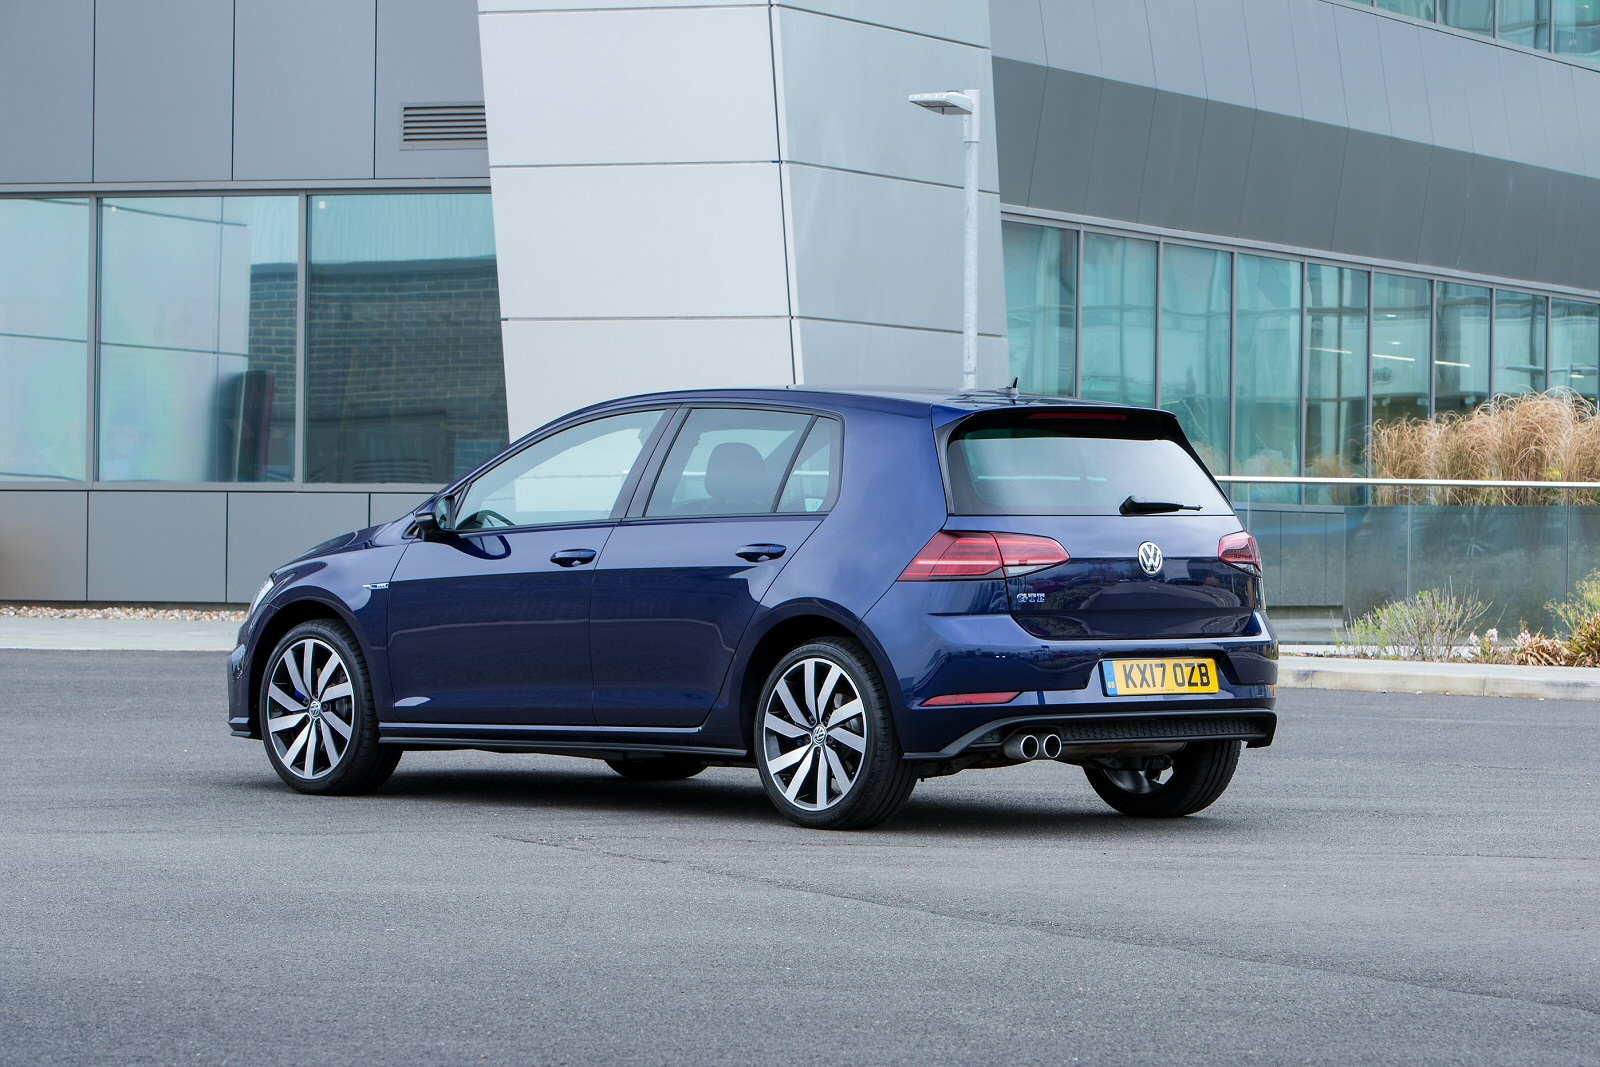 new volkswagen golf 1 4 tsi gte 5dr dsg hatchback for sale south hereford garages. Black Bedroom Furniture Sets. Home Design Ideas